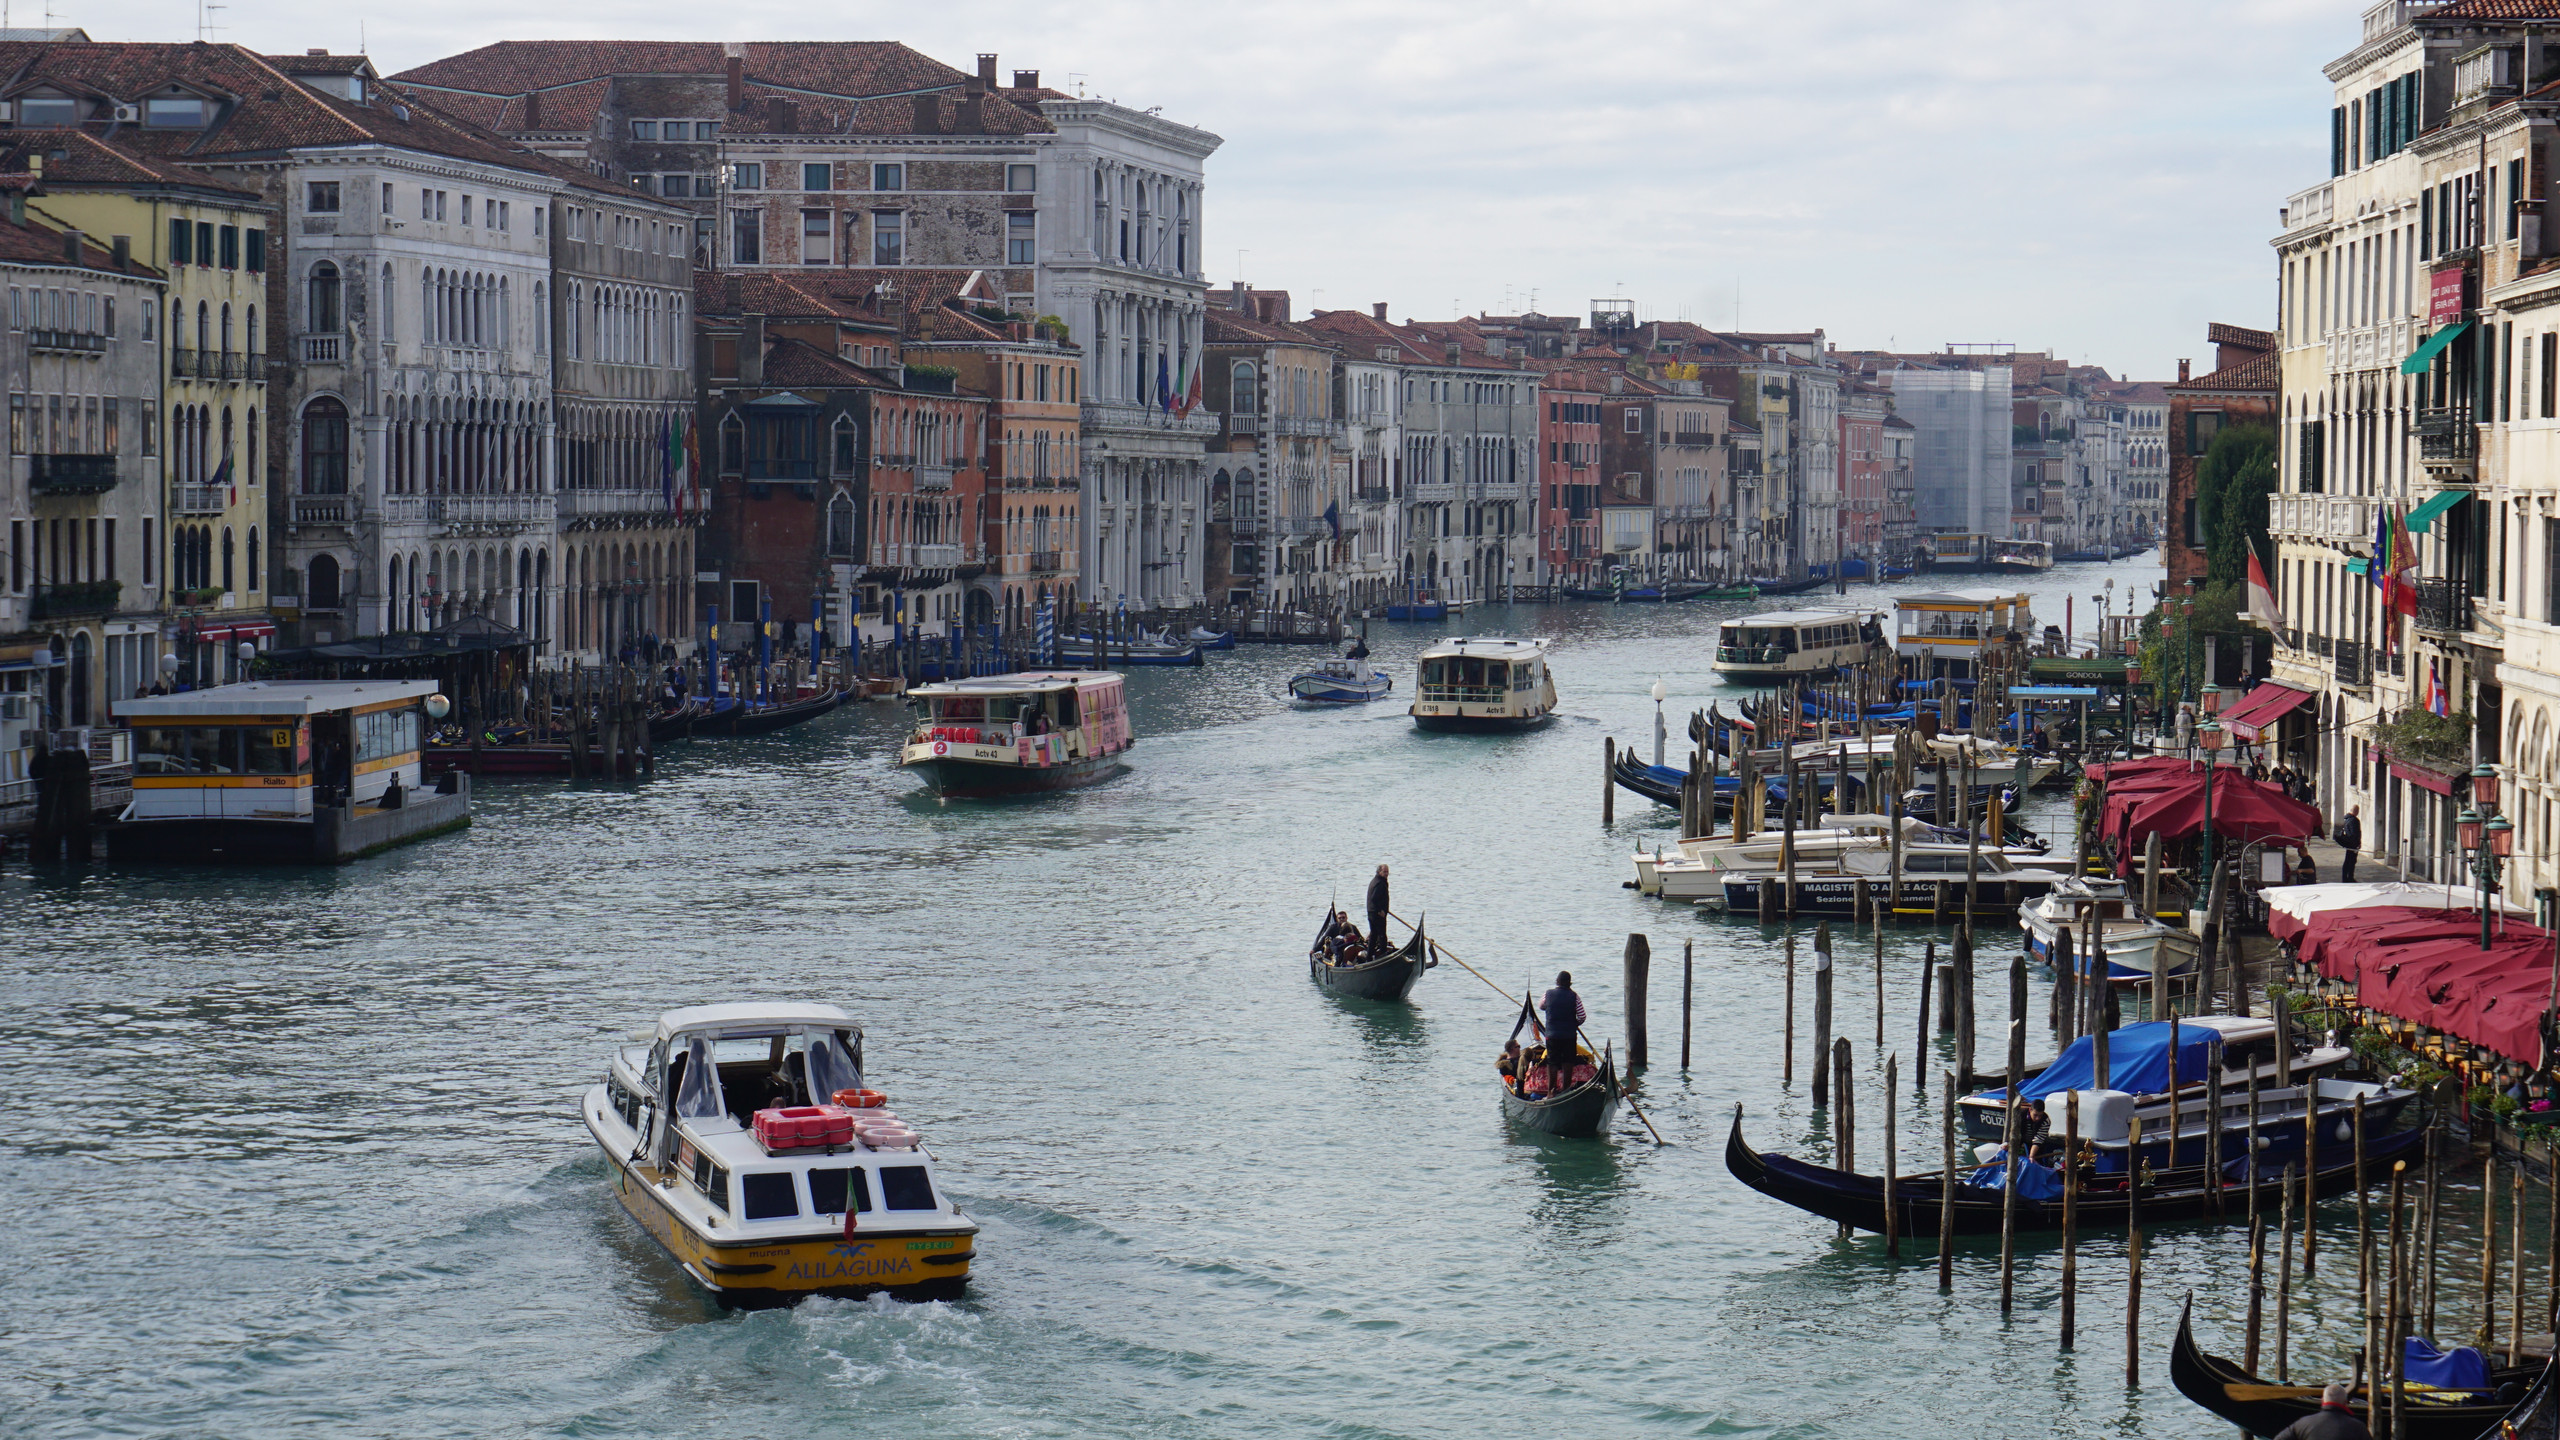 A view down the Grand Canal